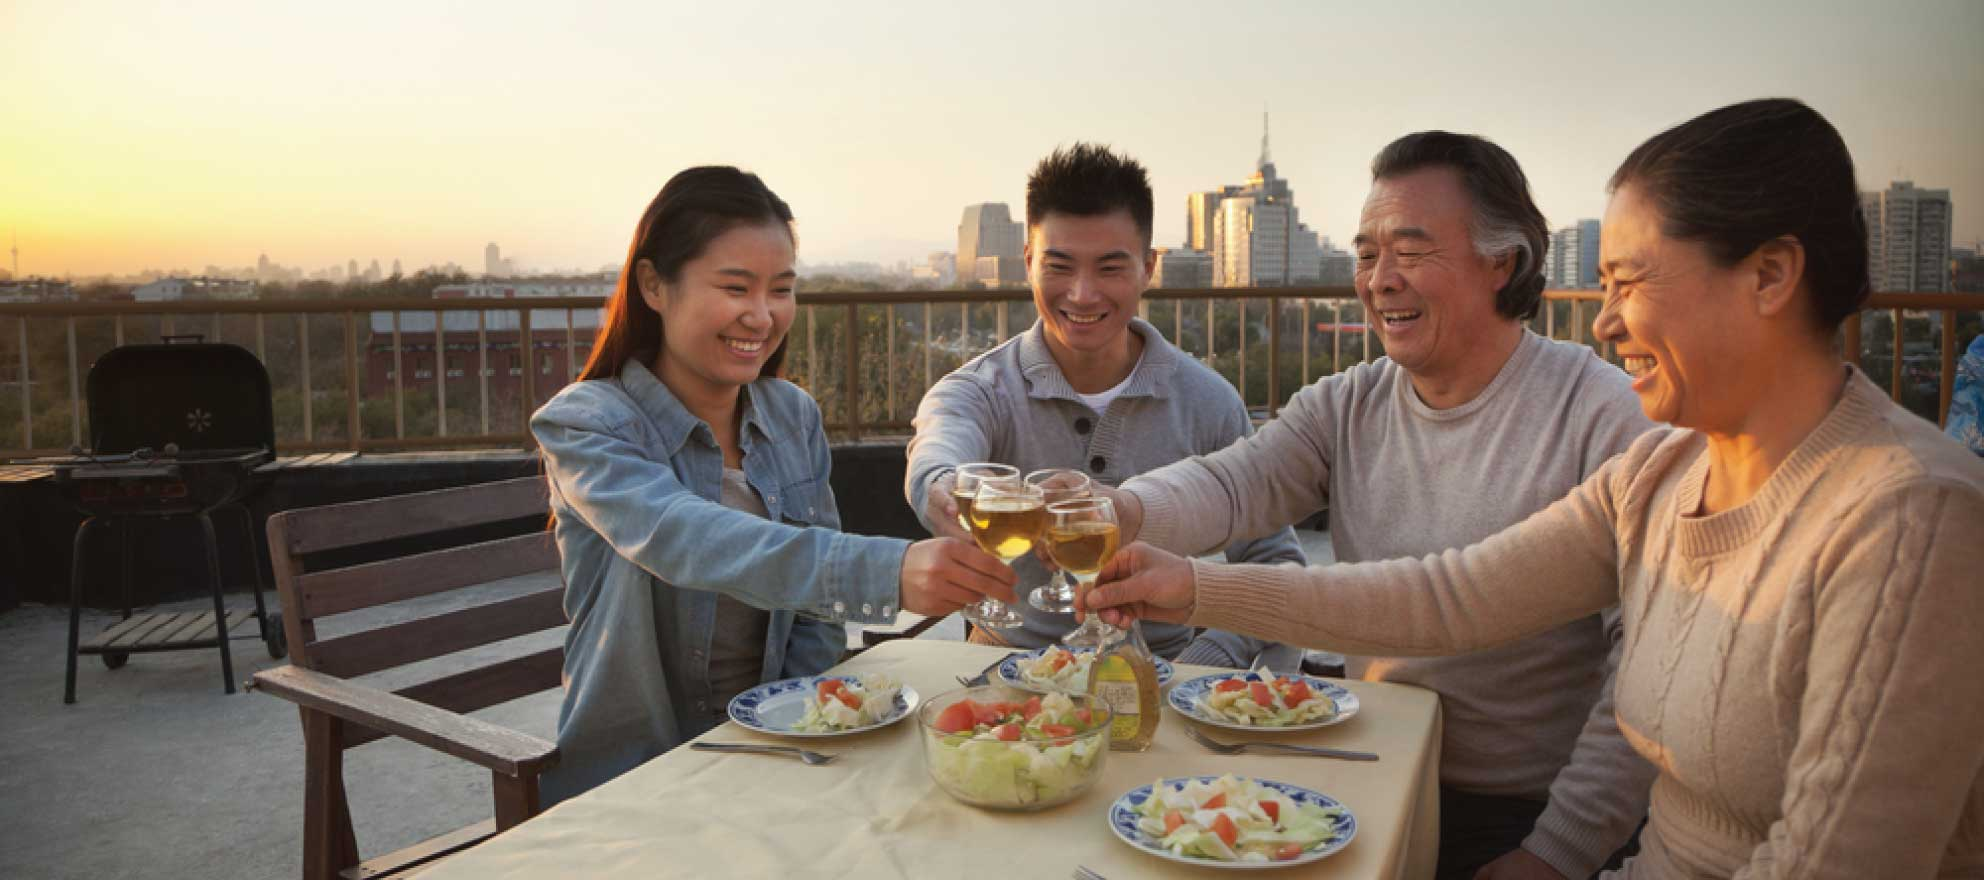 Millennial homebuyers expected to rely more on parents for help